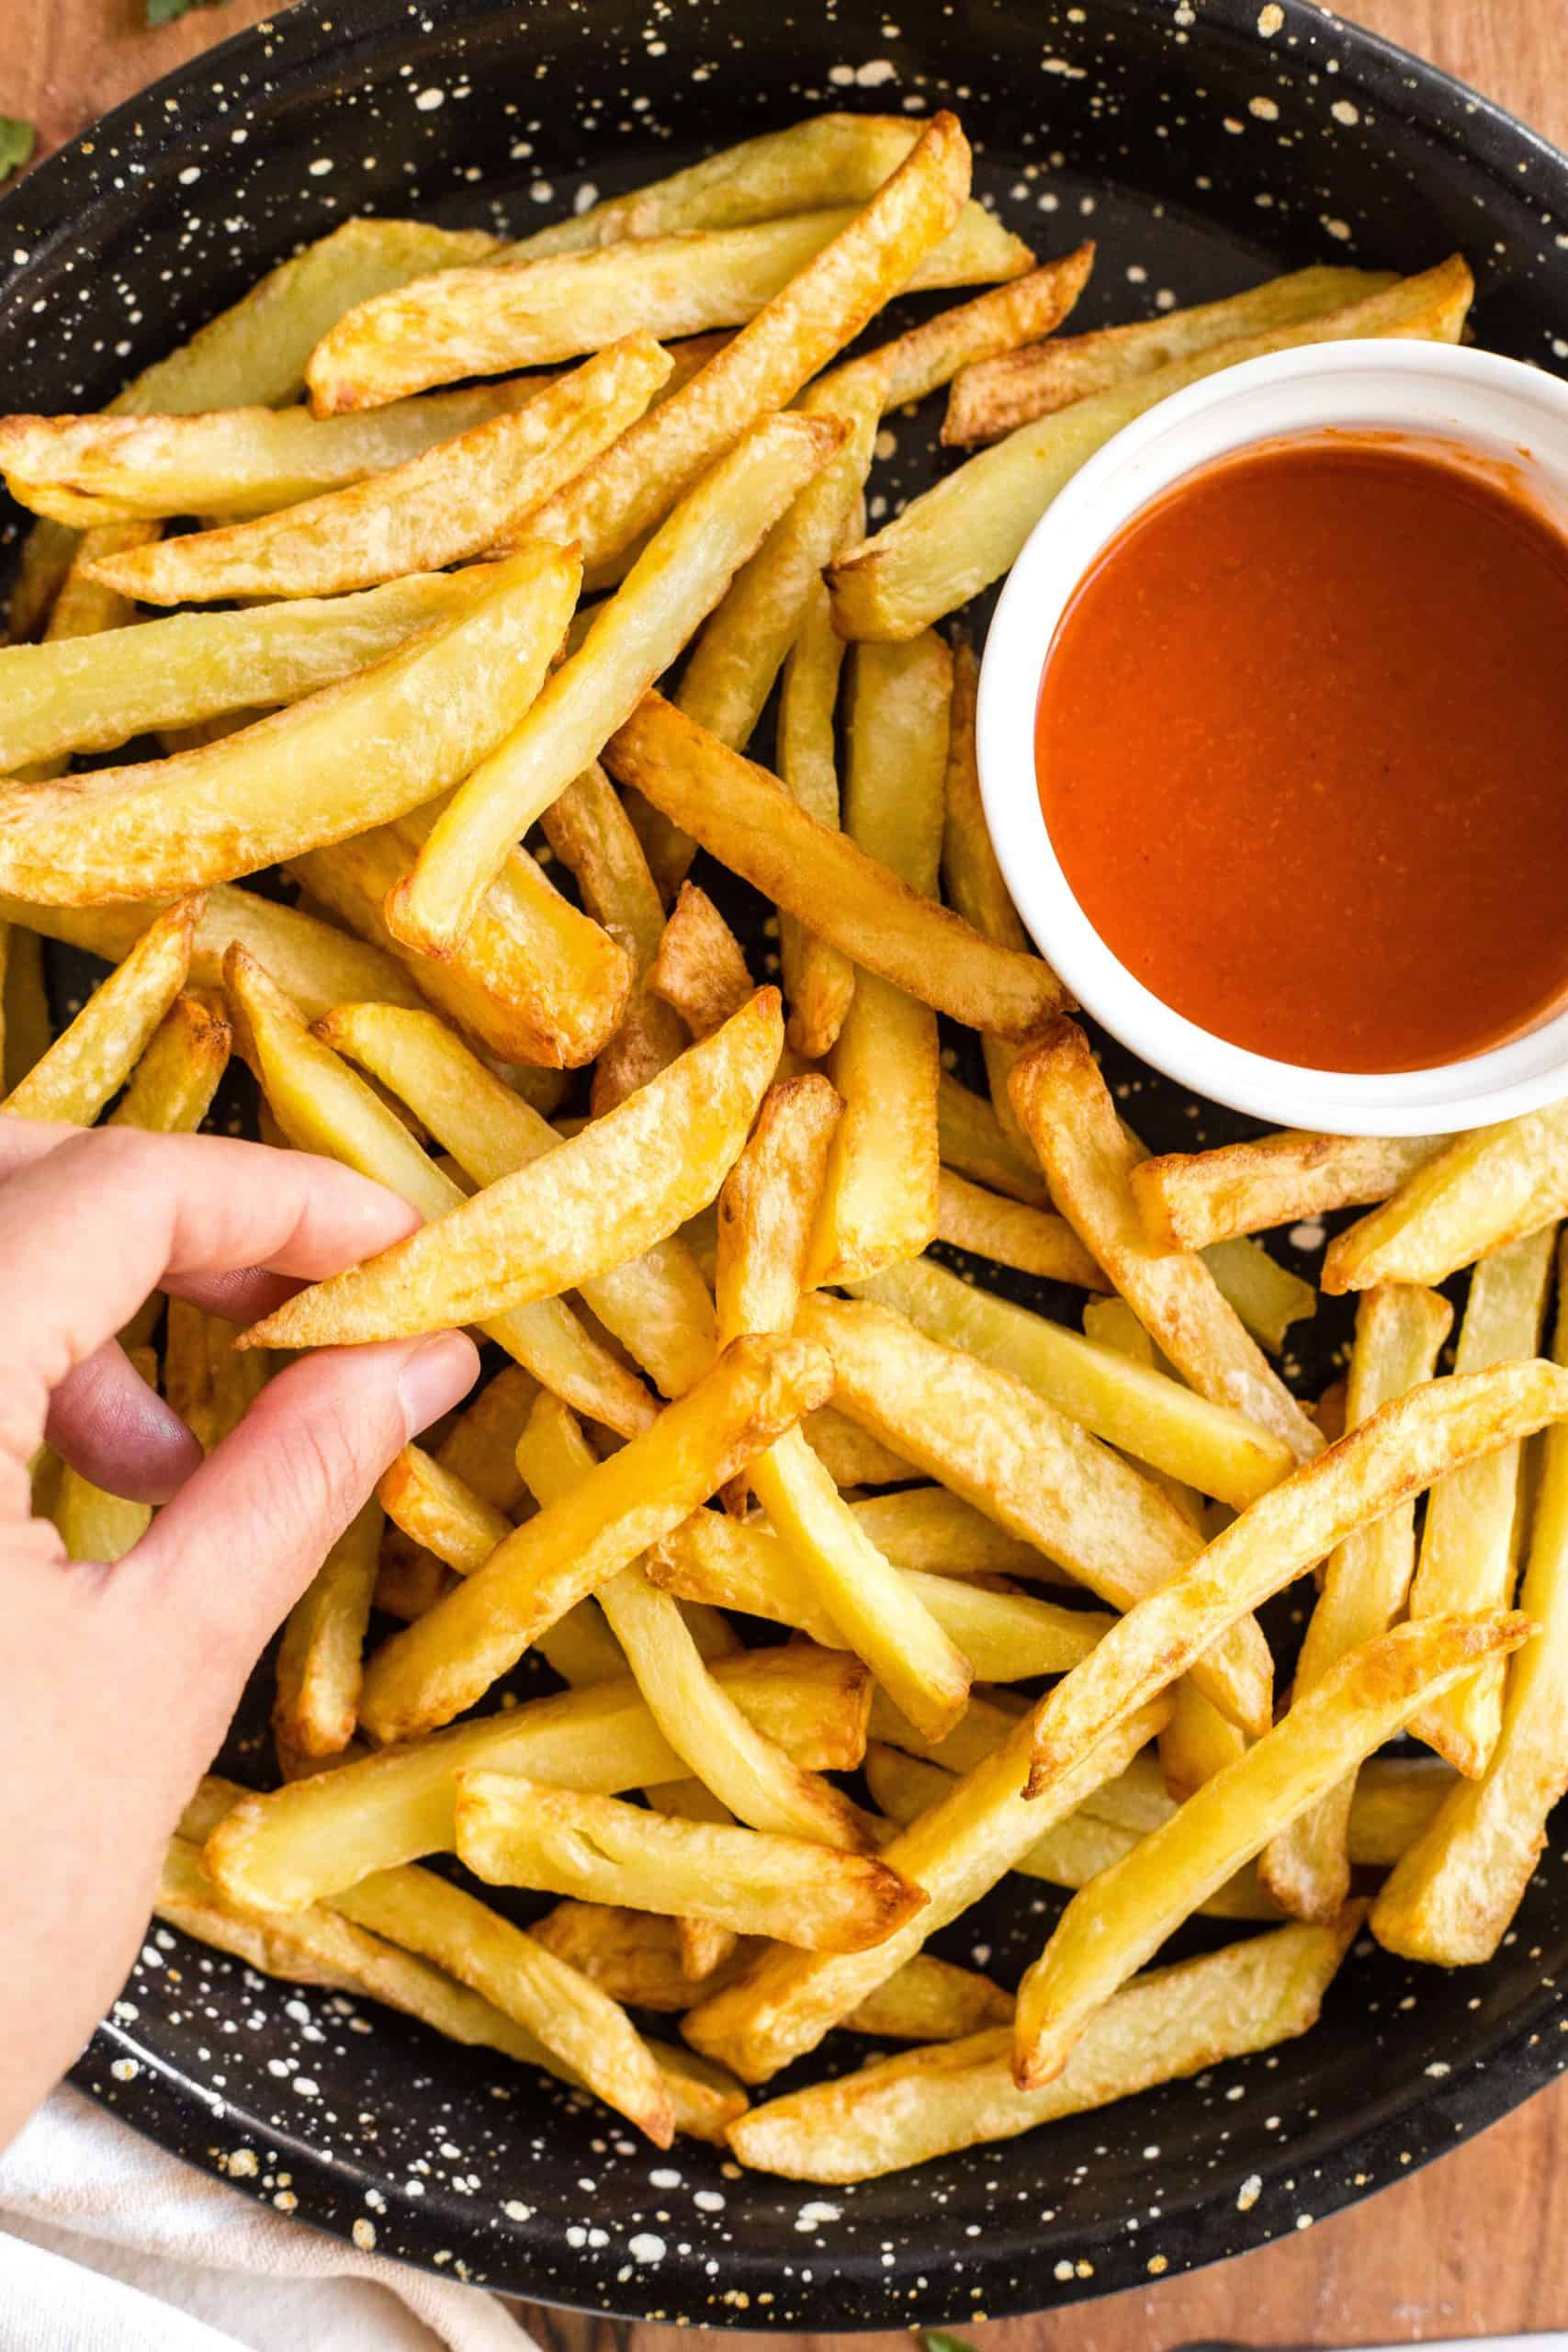 Hand holding a crispy french fry.